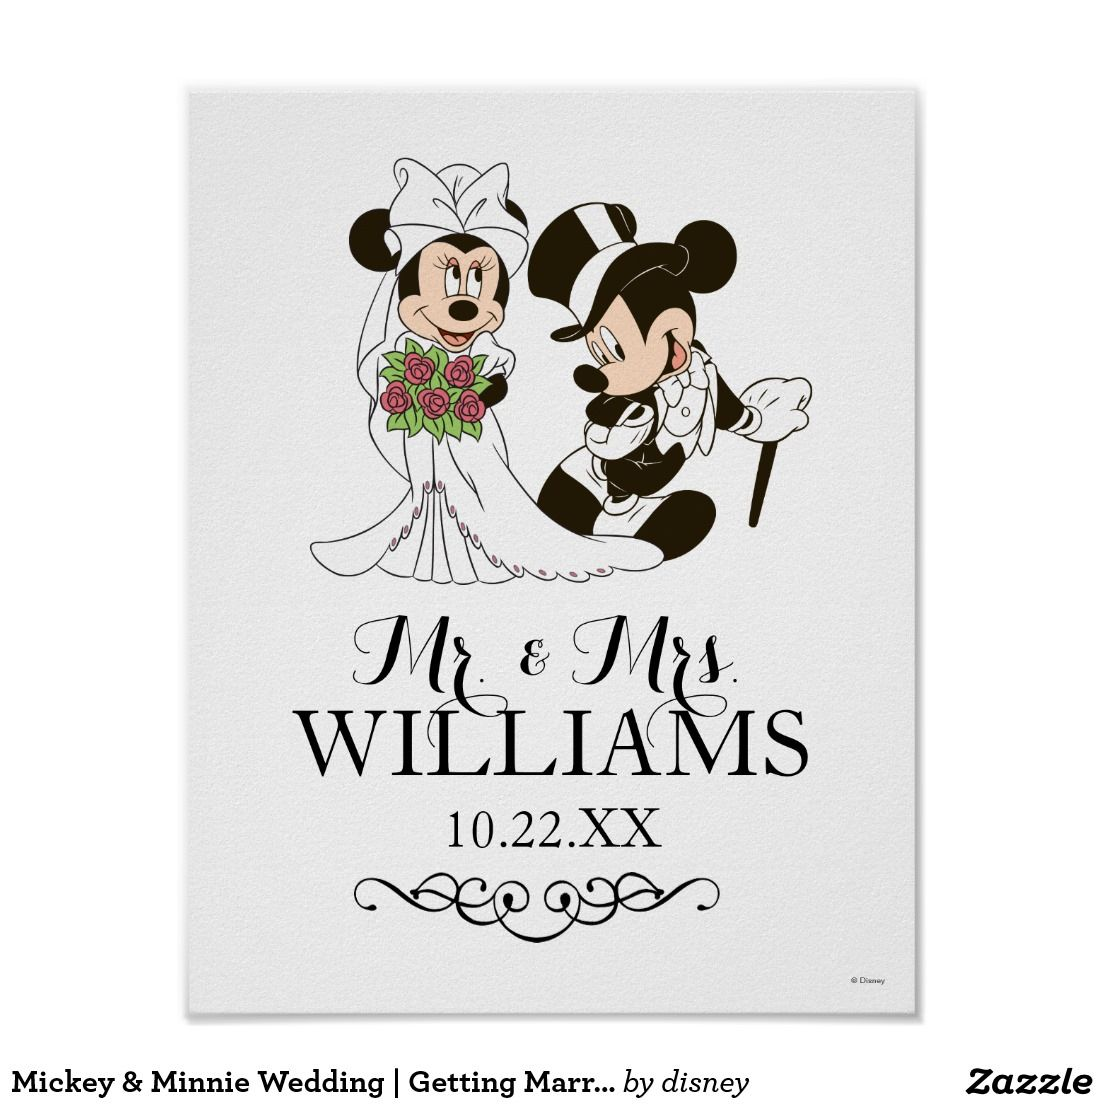 Mickey & Minnie Wedding | Getting Married Poster | WEDDING POSTERS ...